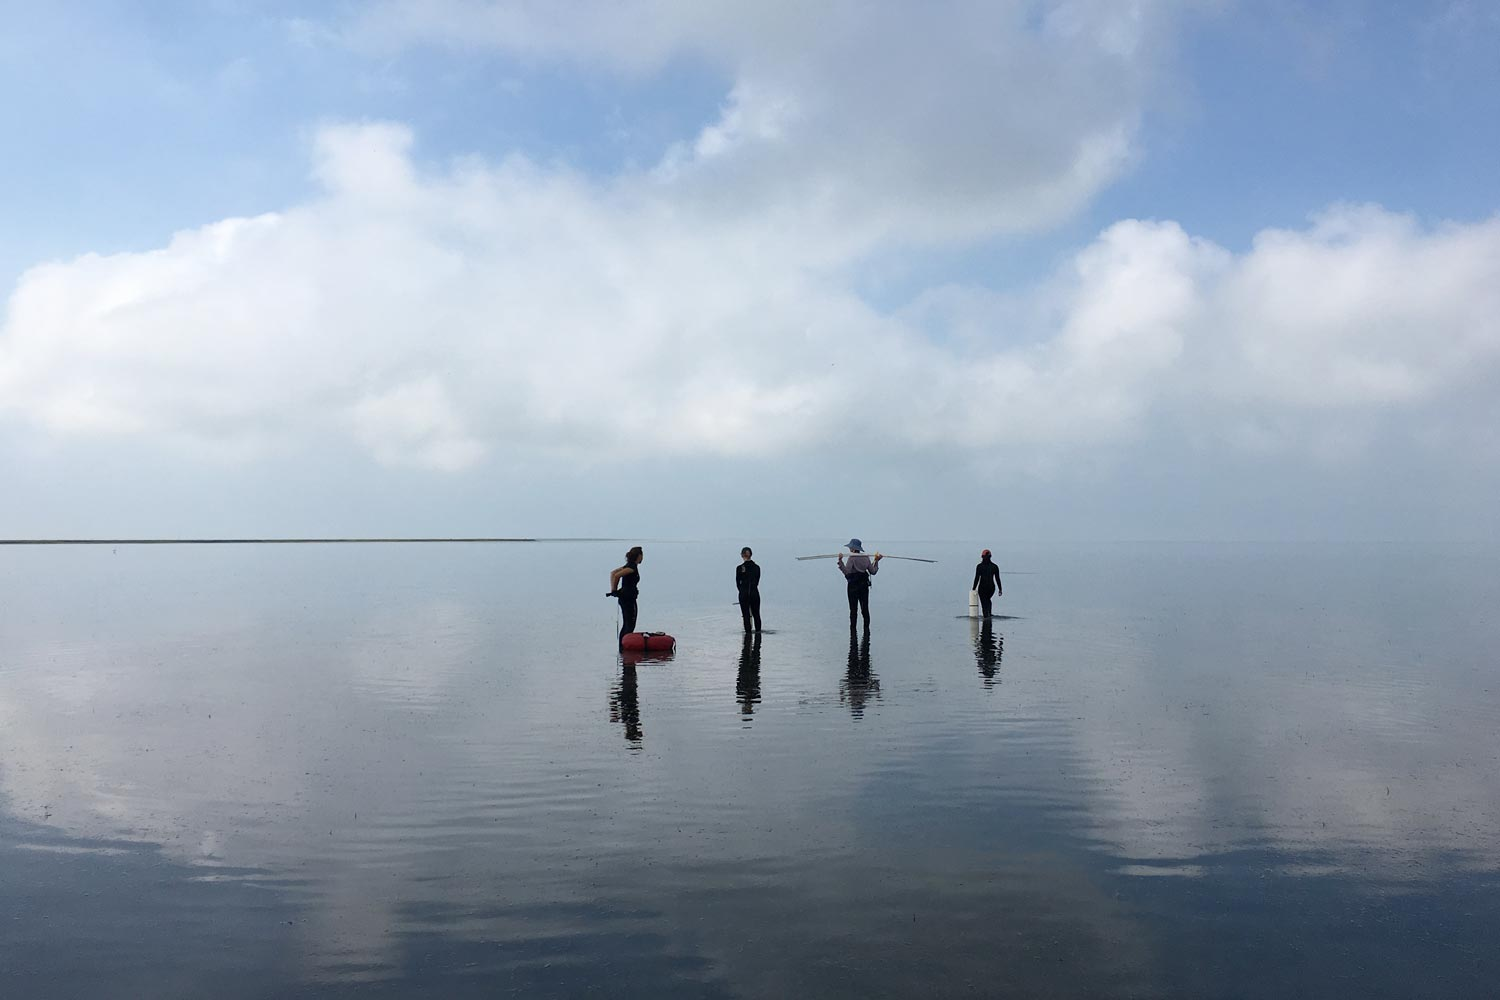 Graduate students and interns survey a seagrass site at the Virginia Coast Reserve.